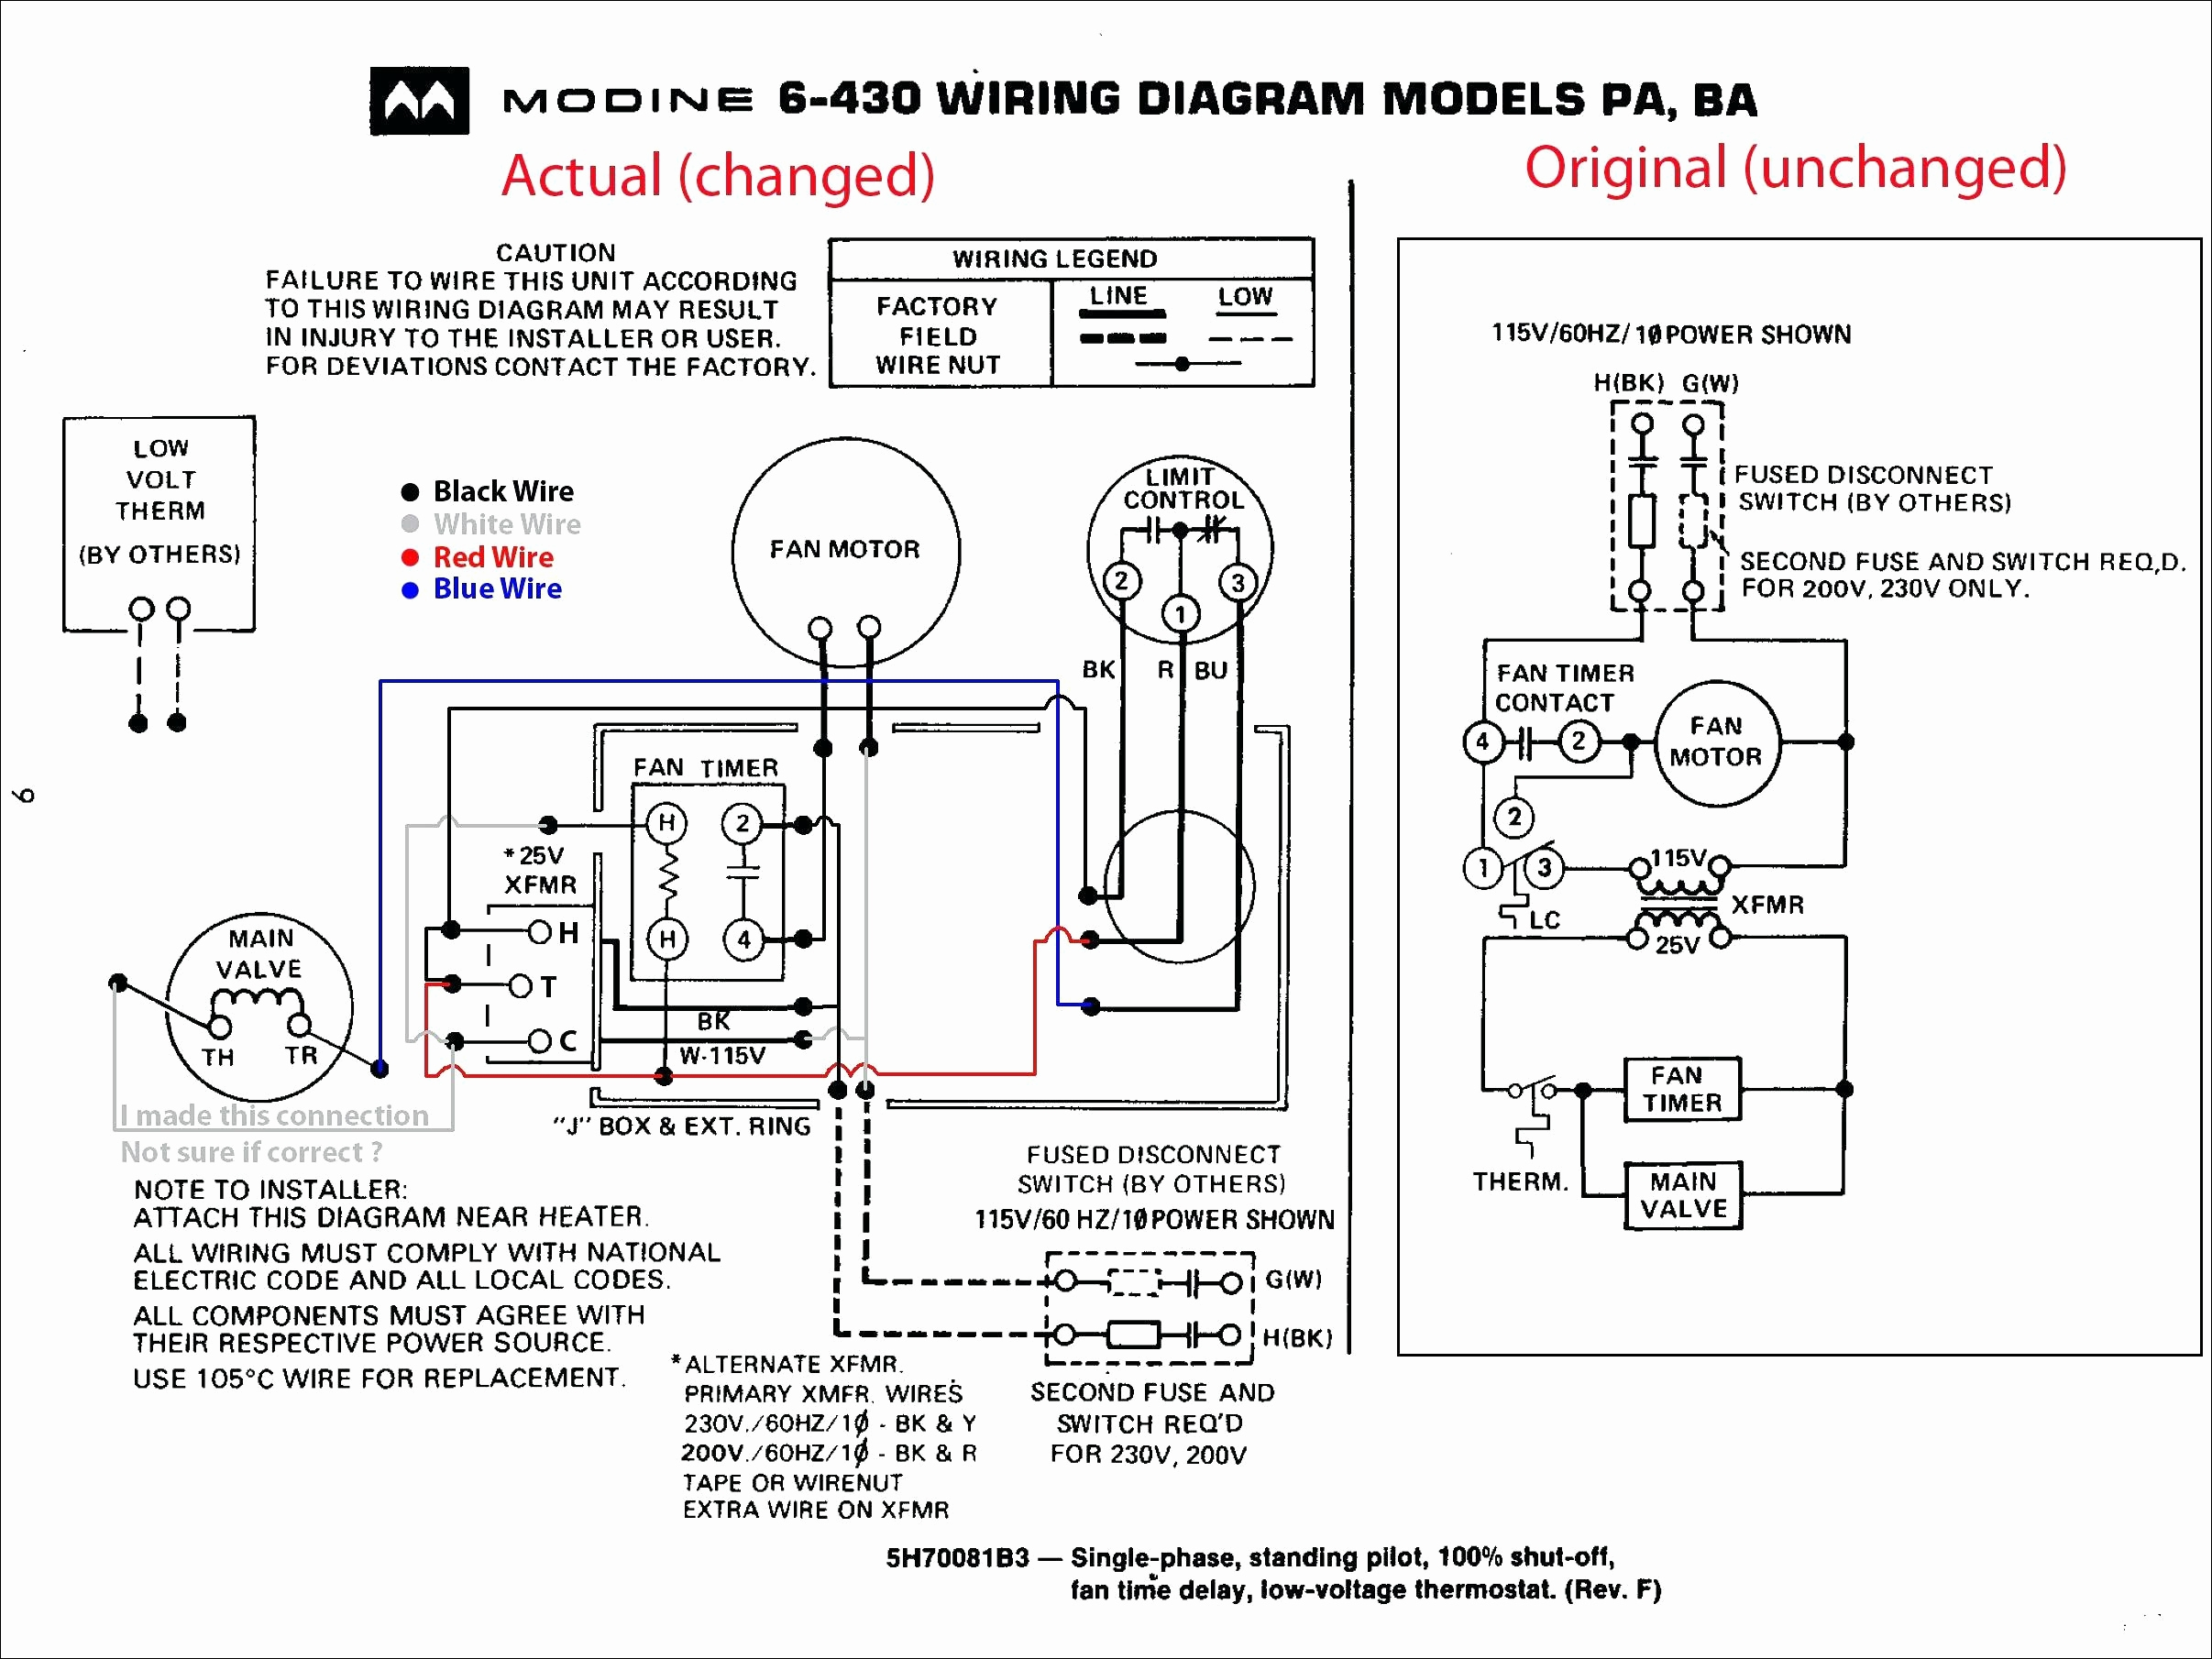 modine heater wiring diagram Download-Modine Heater Parts Diagram for Amazing Trane Gas Furnace Wiring Diagram Image Electrical Diagram 8-b